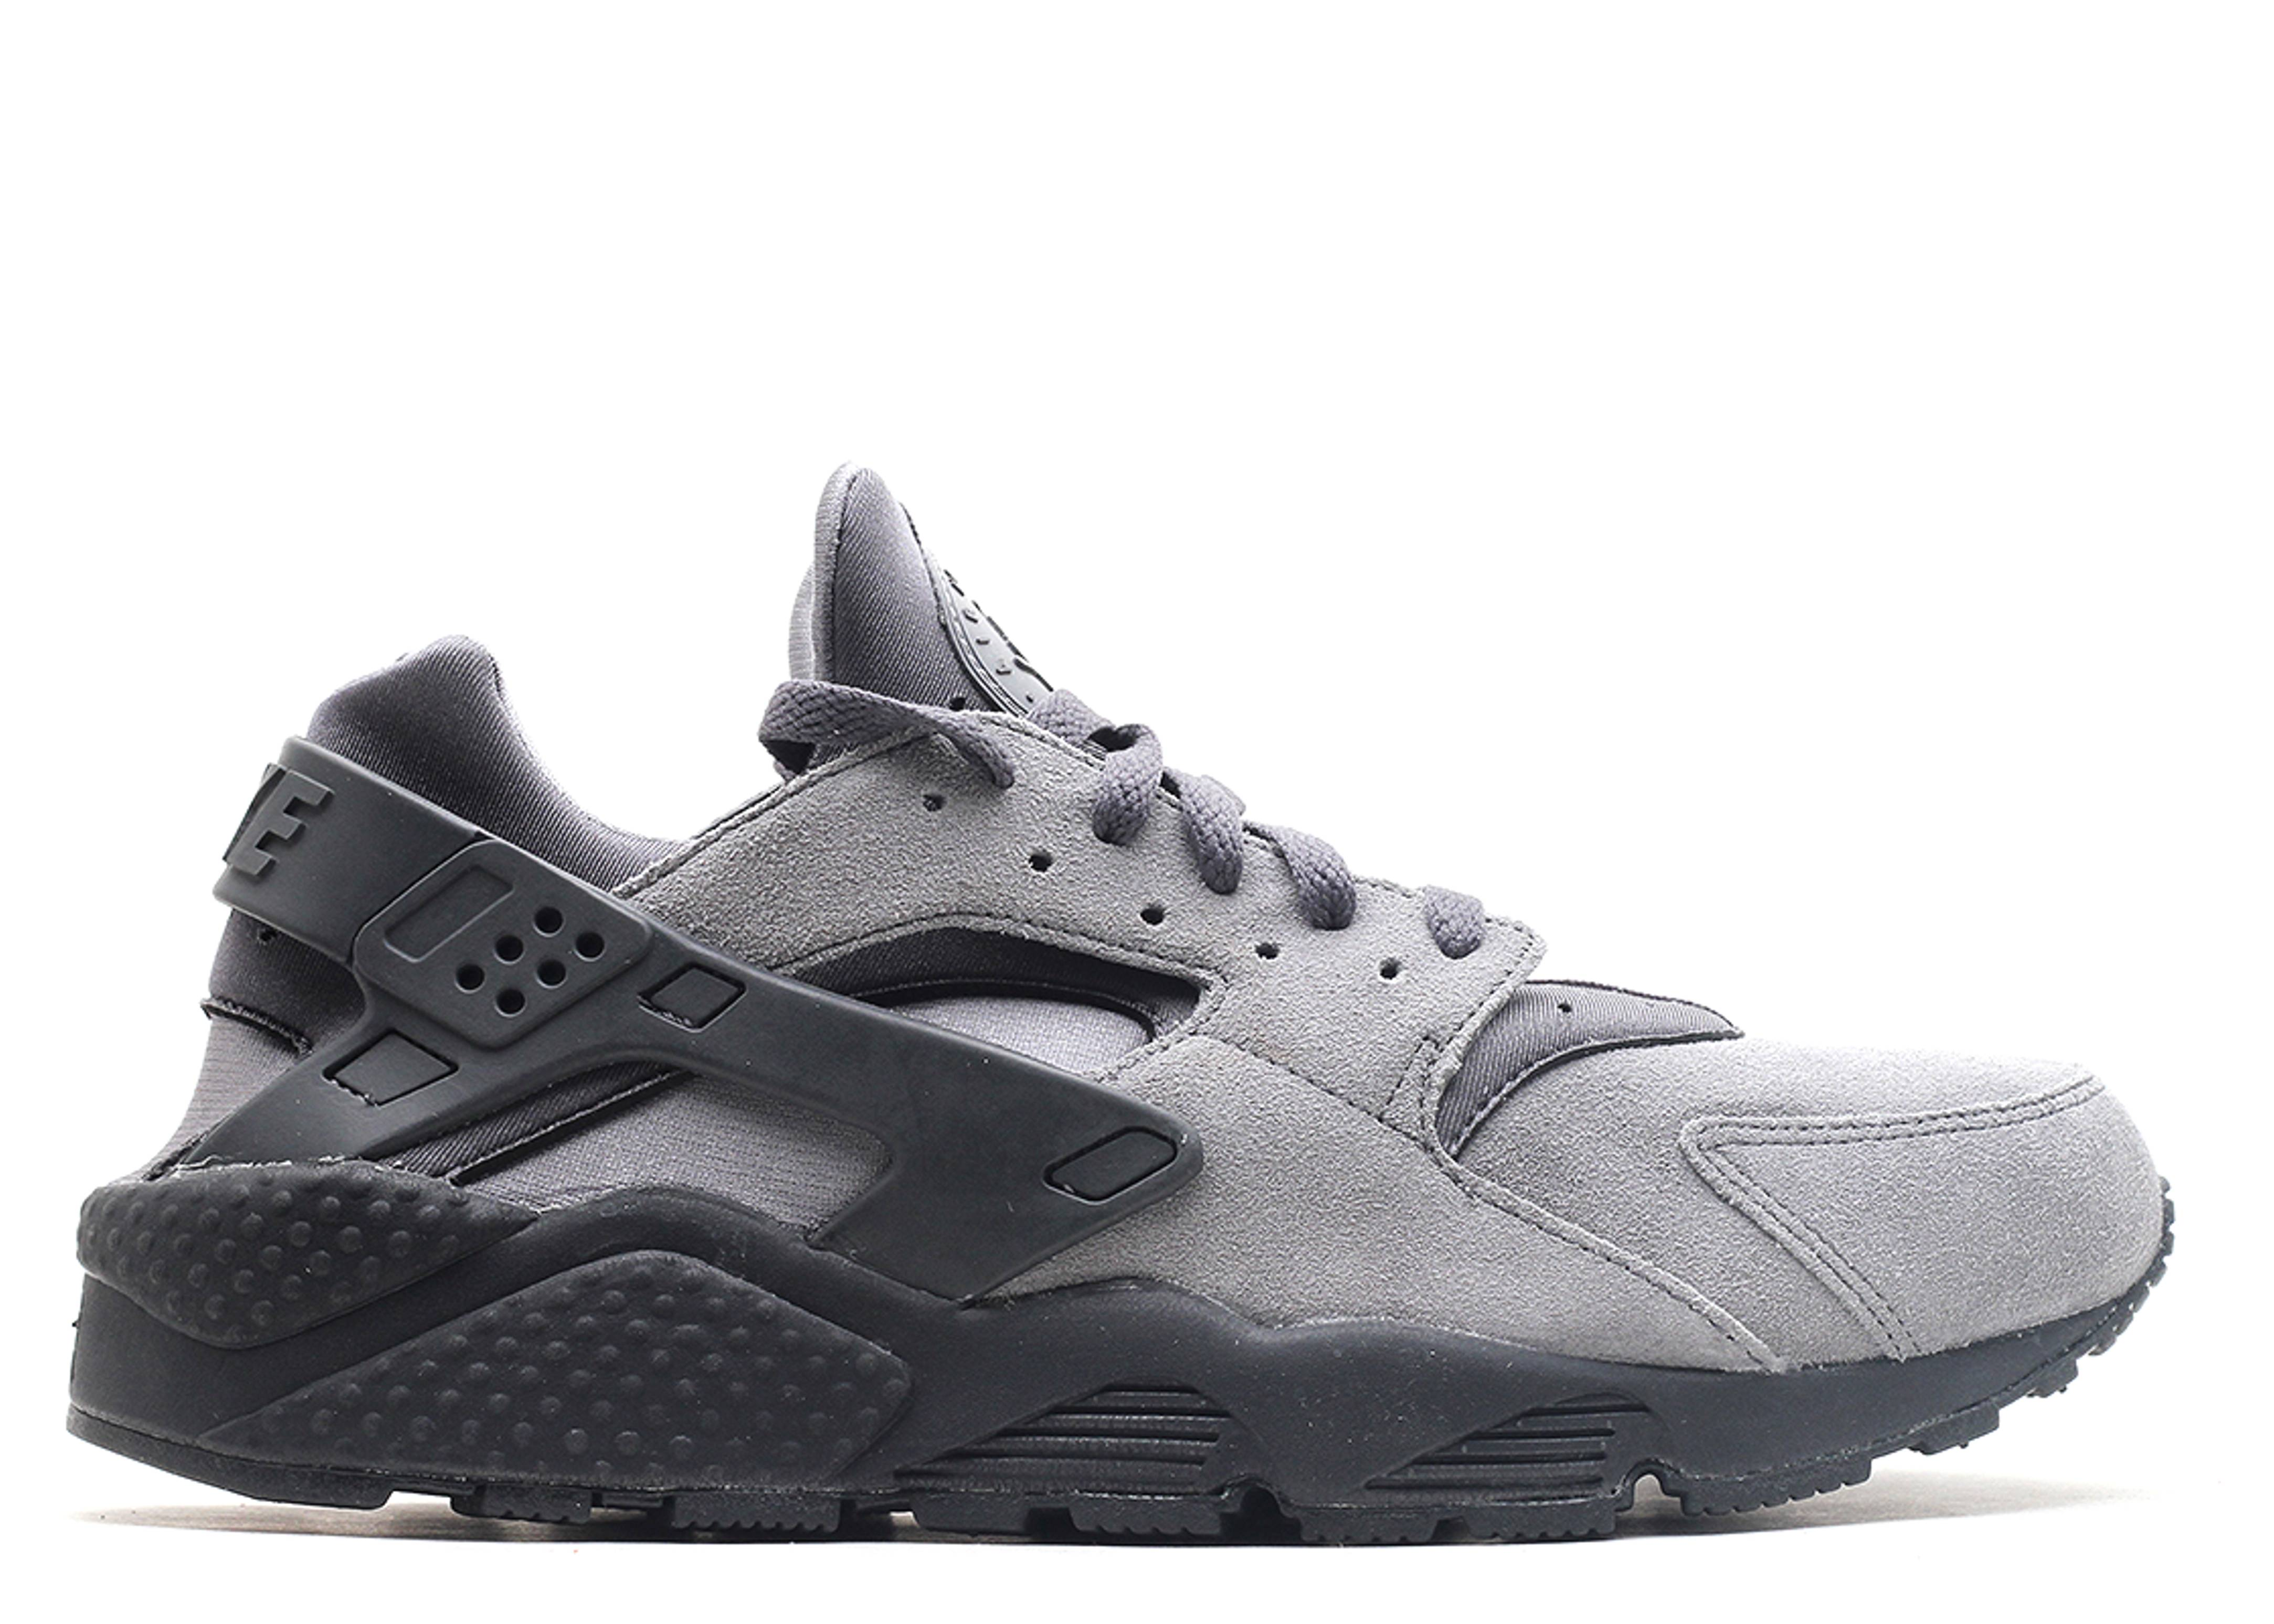 nike huarache gray and black